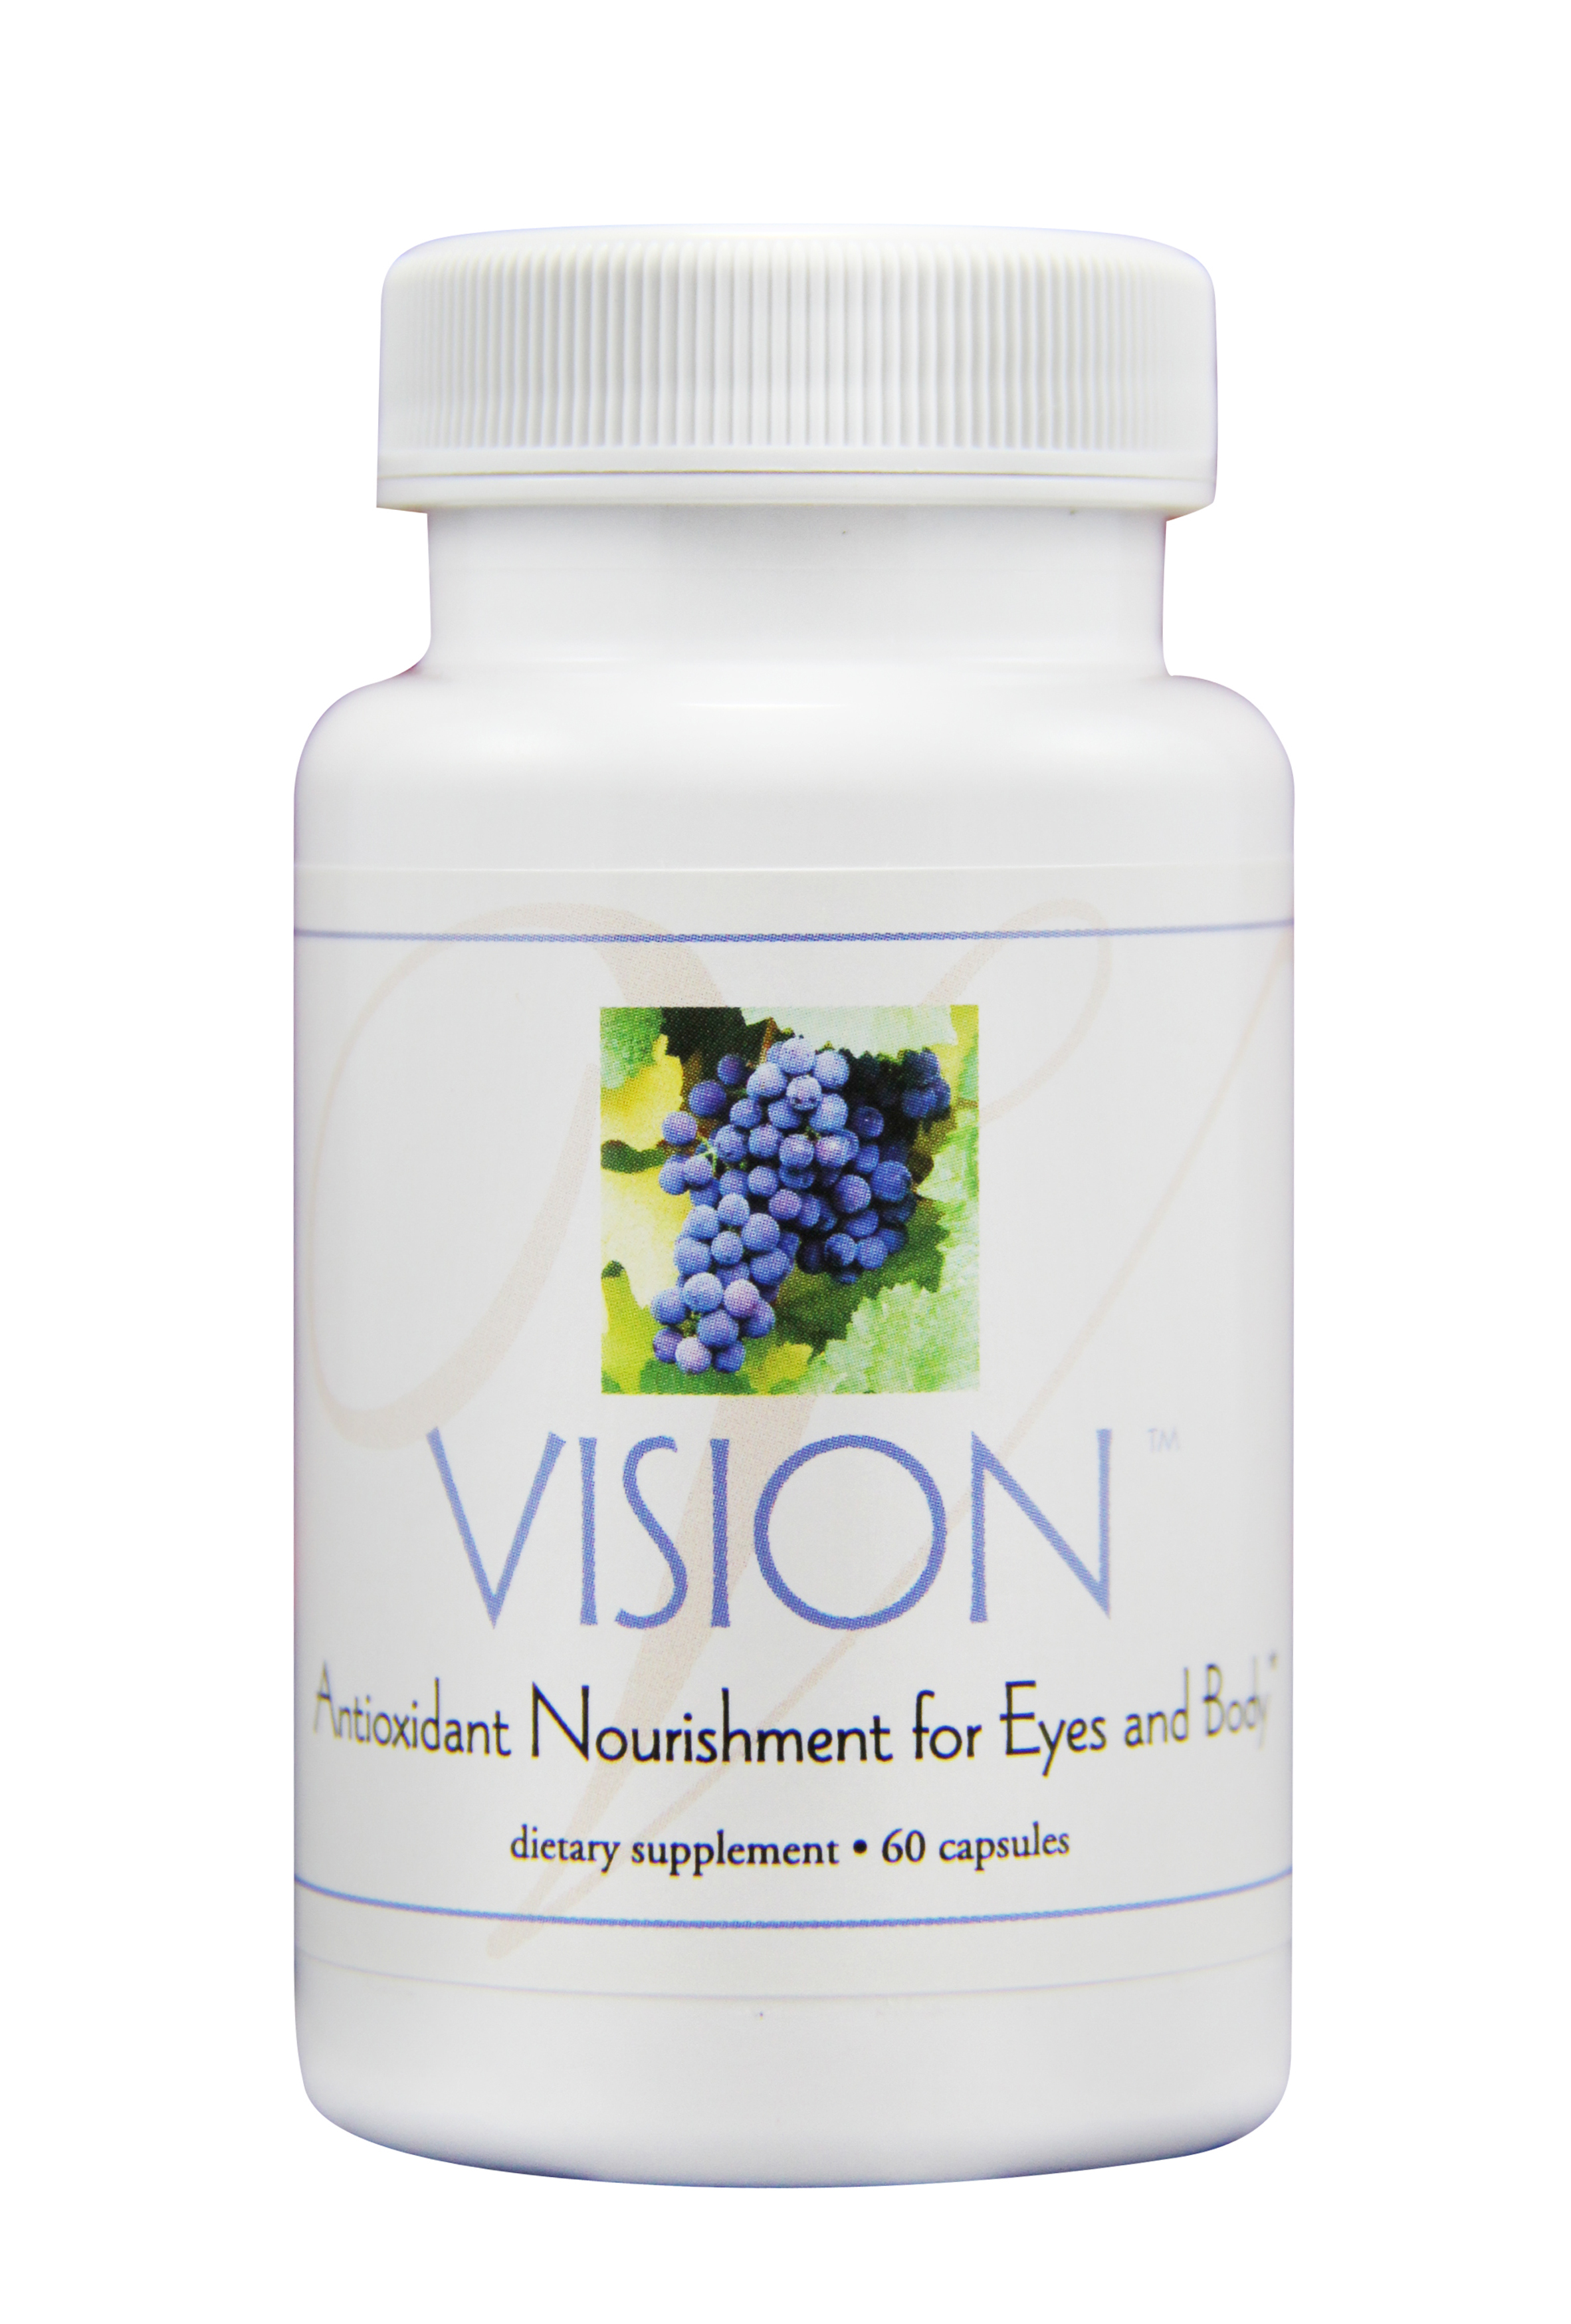 vision - SUPPORTS EYE HEALTH*Featured Ingredients: Grape Seed, Cassia Tora